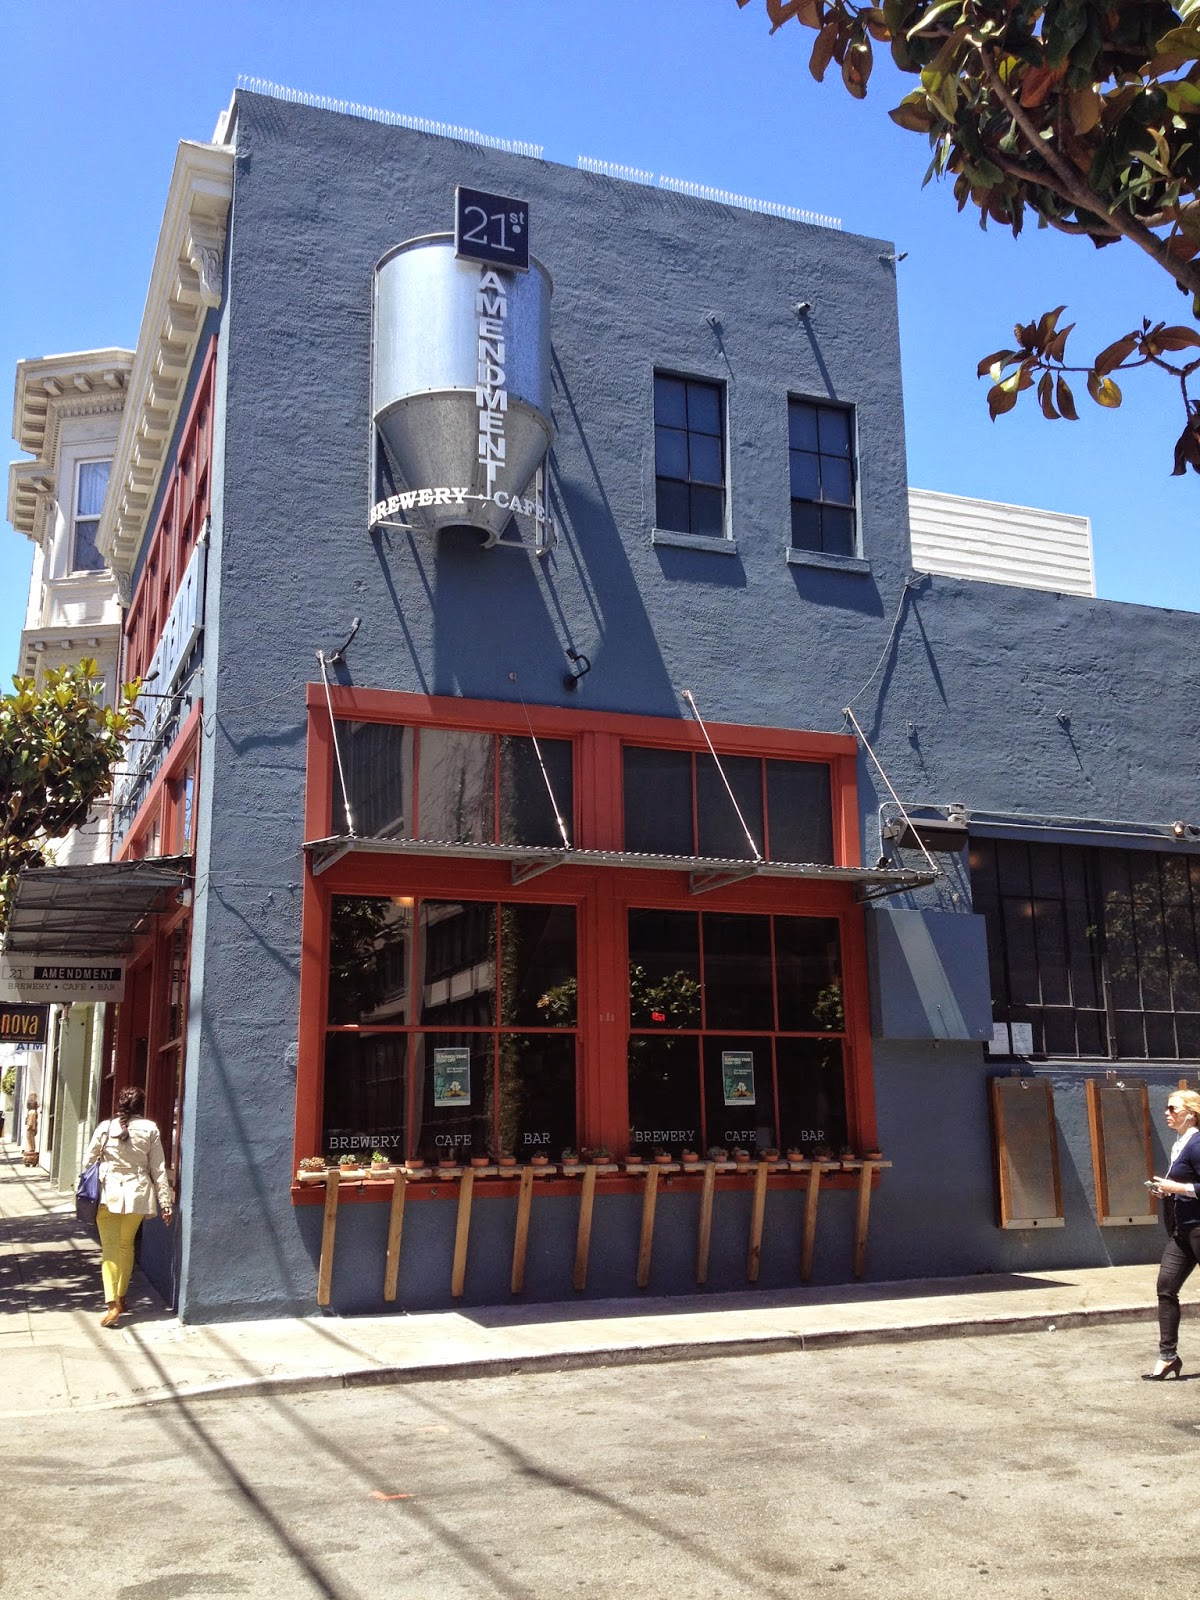 San Francisco: 21st Amendment Brewery Visit